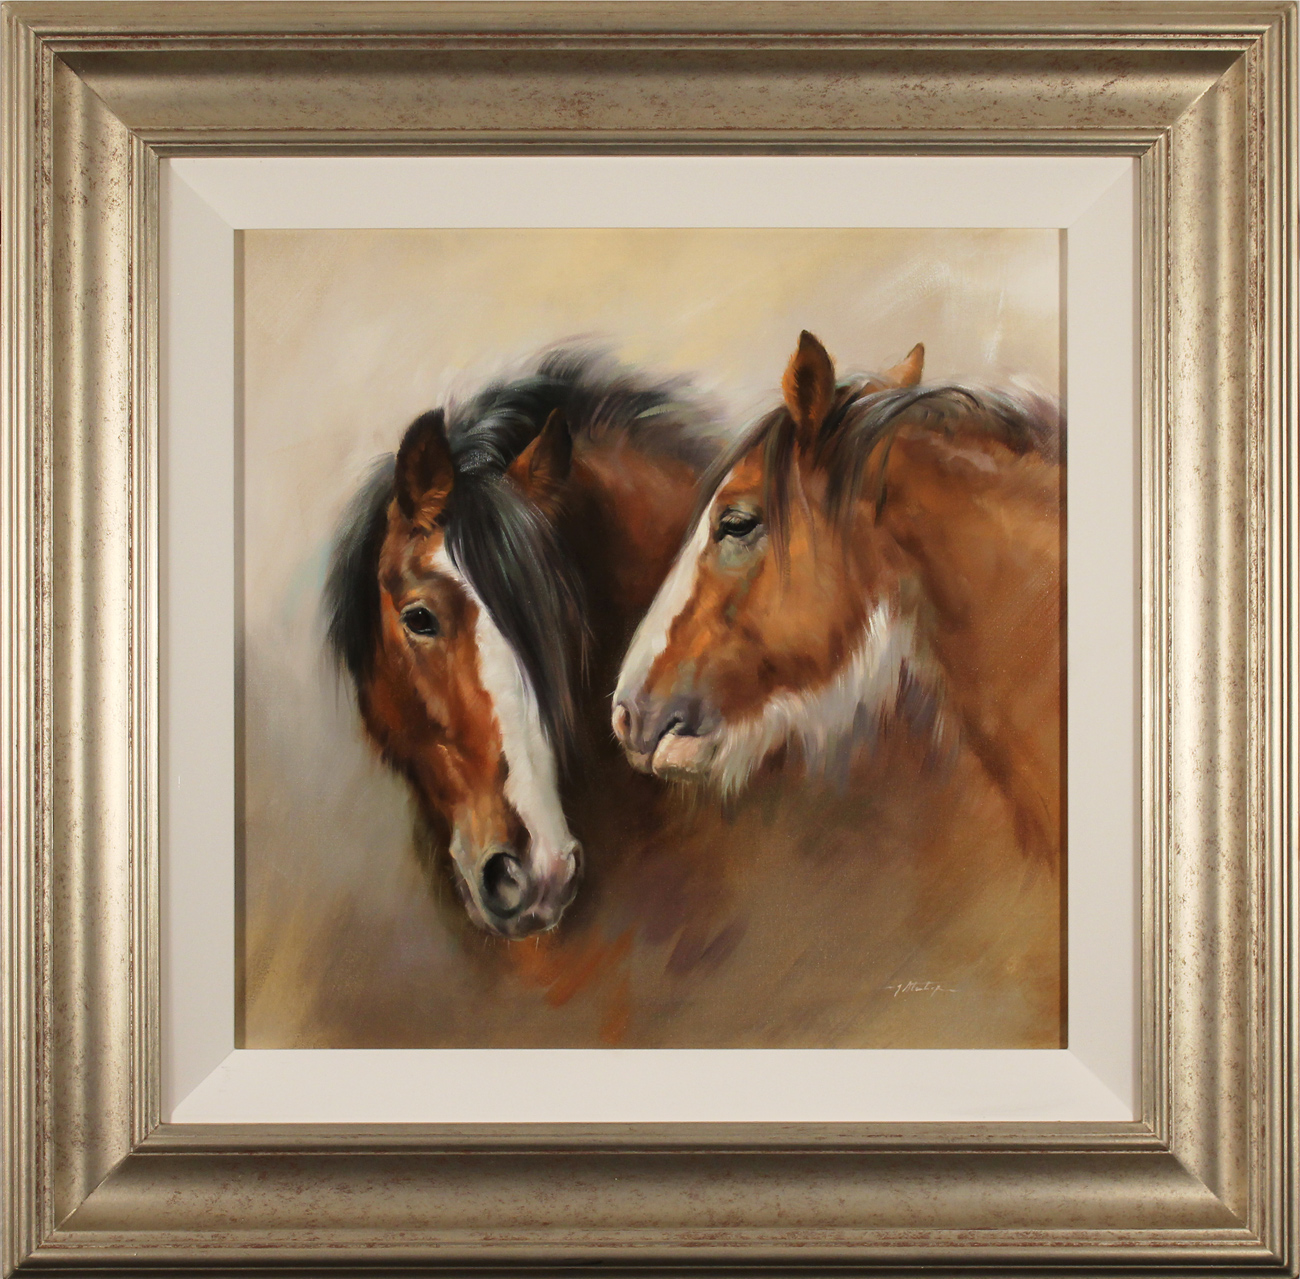 Jacqueline Stanhope, Original oil painting on canvas, Shire Horses Click to enlarge